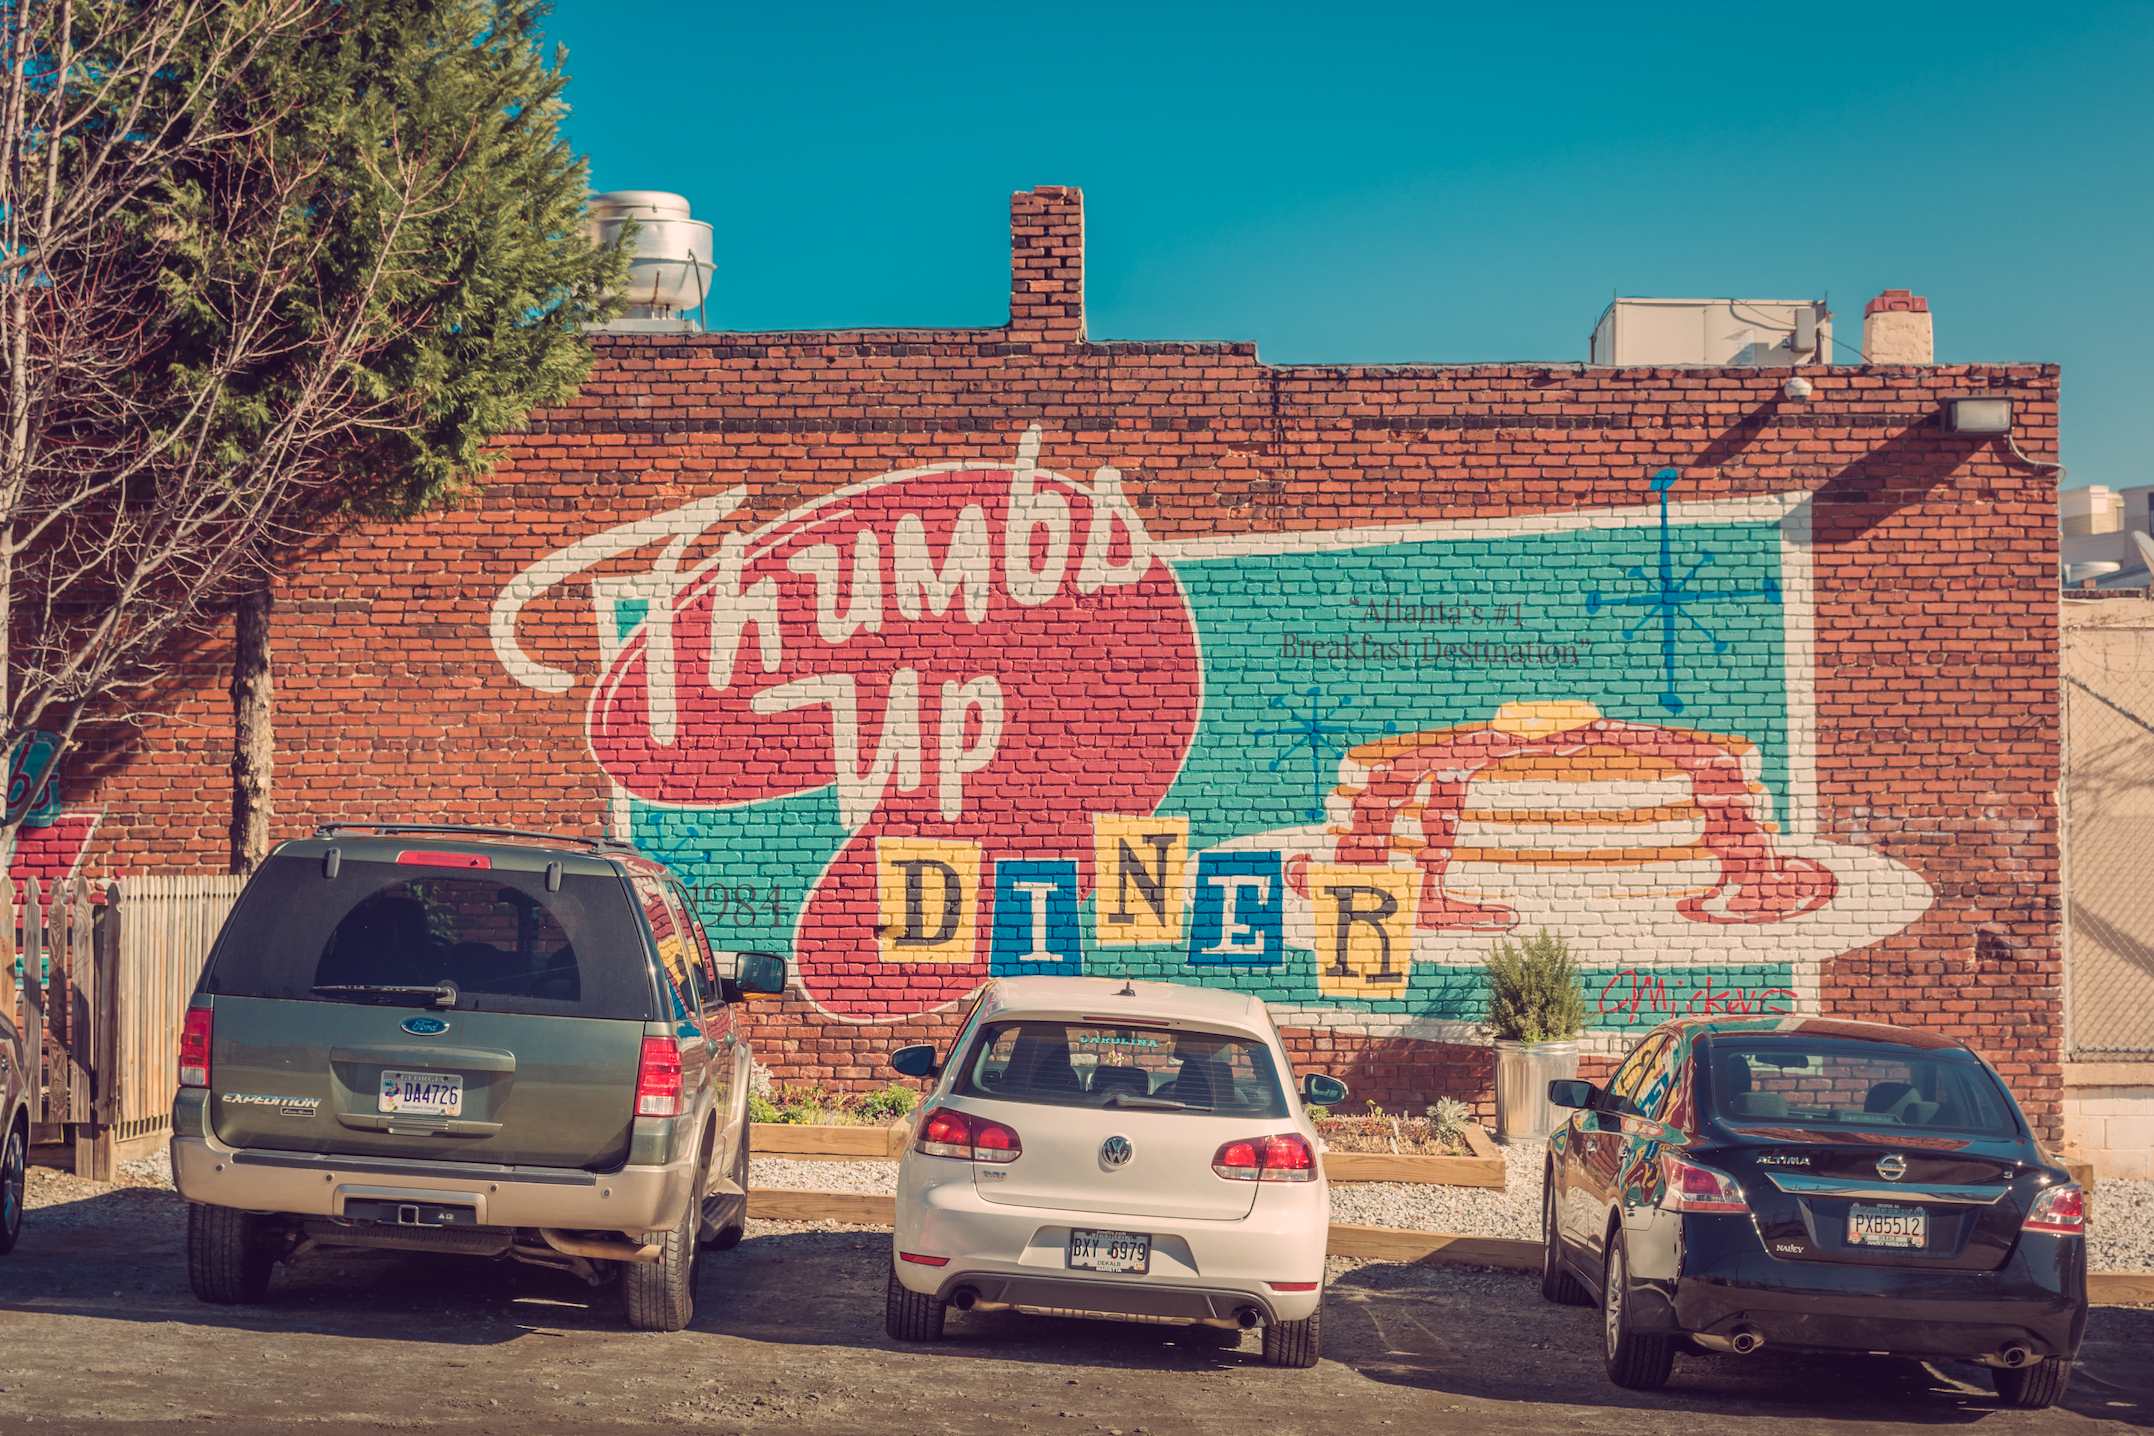 cars parked in front of a 50s style wall mural reading Thumbs Up Diner